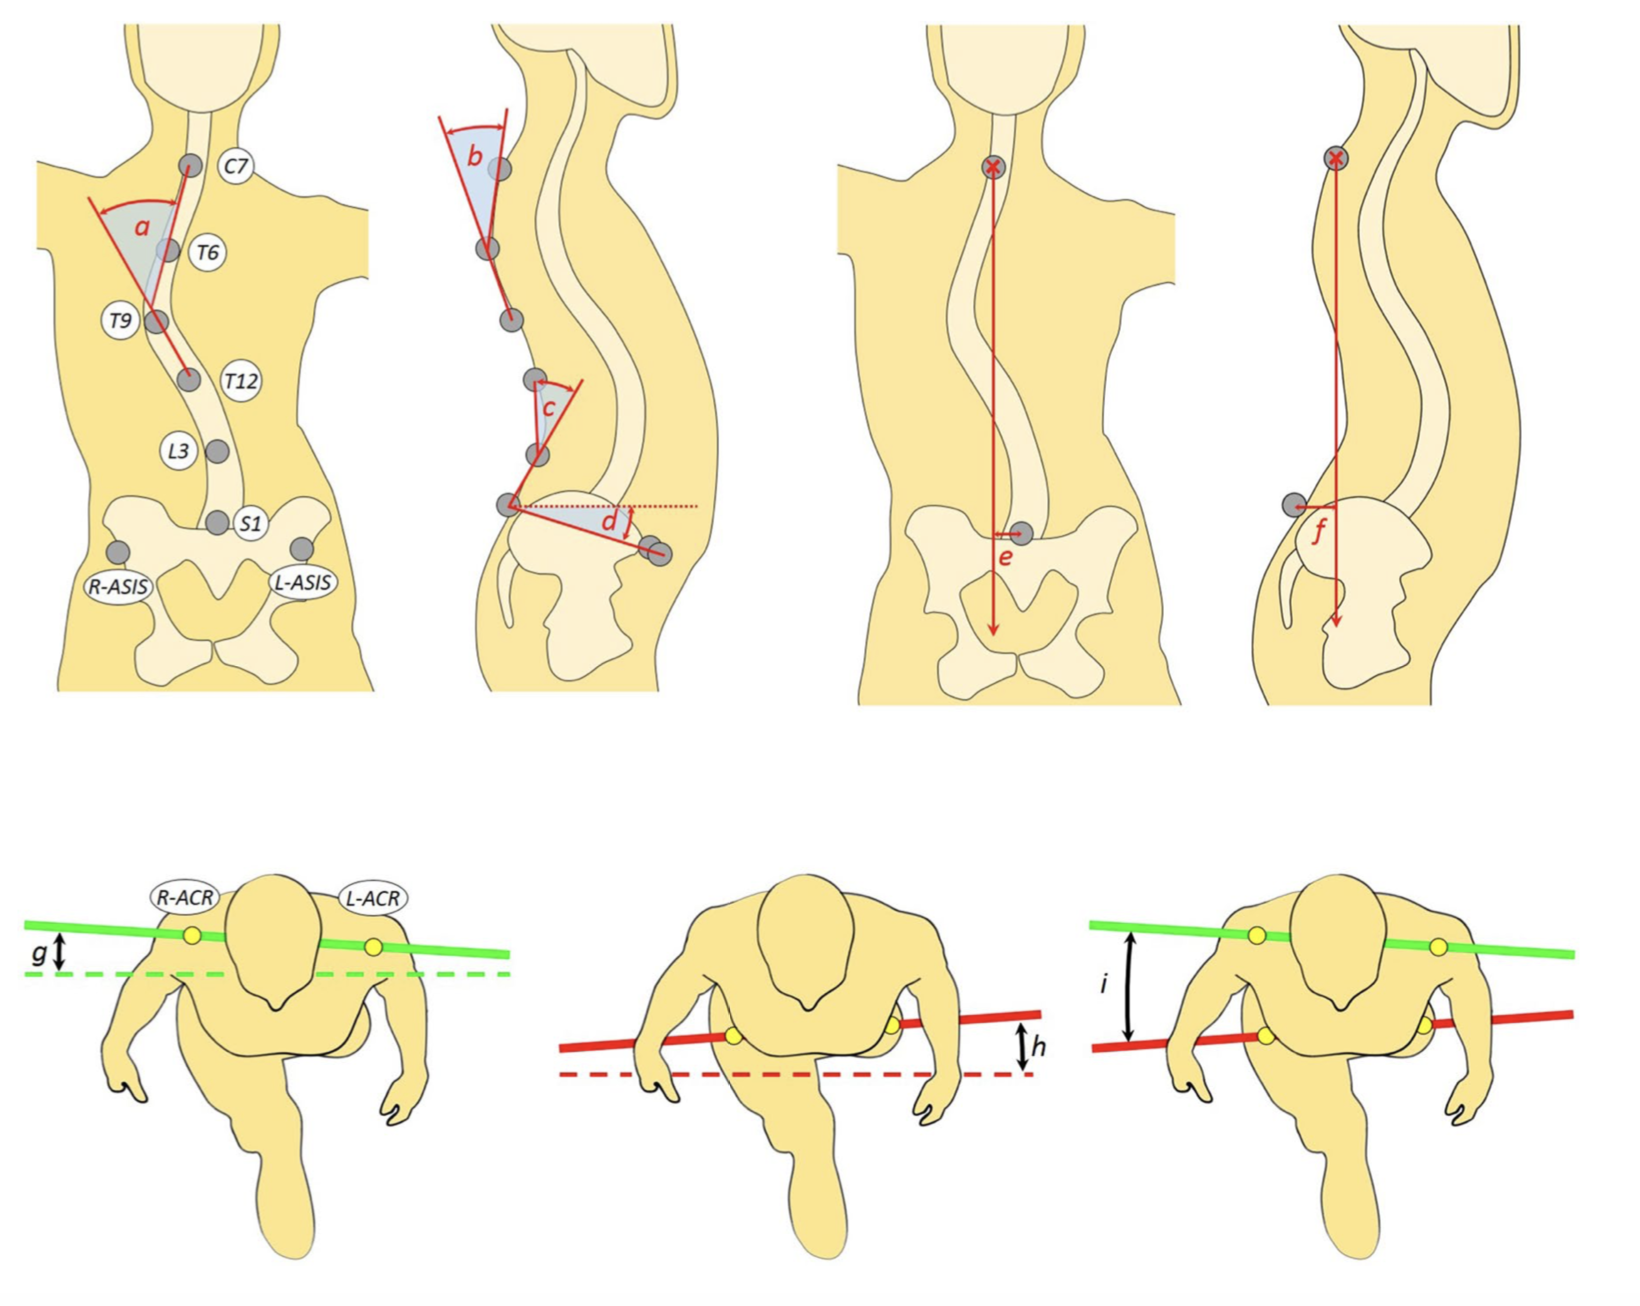 Characterization of trunk motion in adolescents with right thoracic idiopathic scoliosis